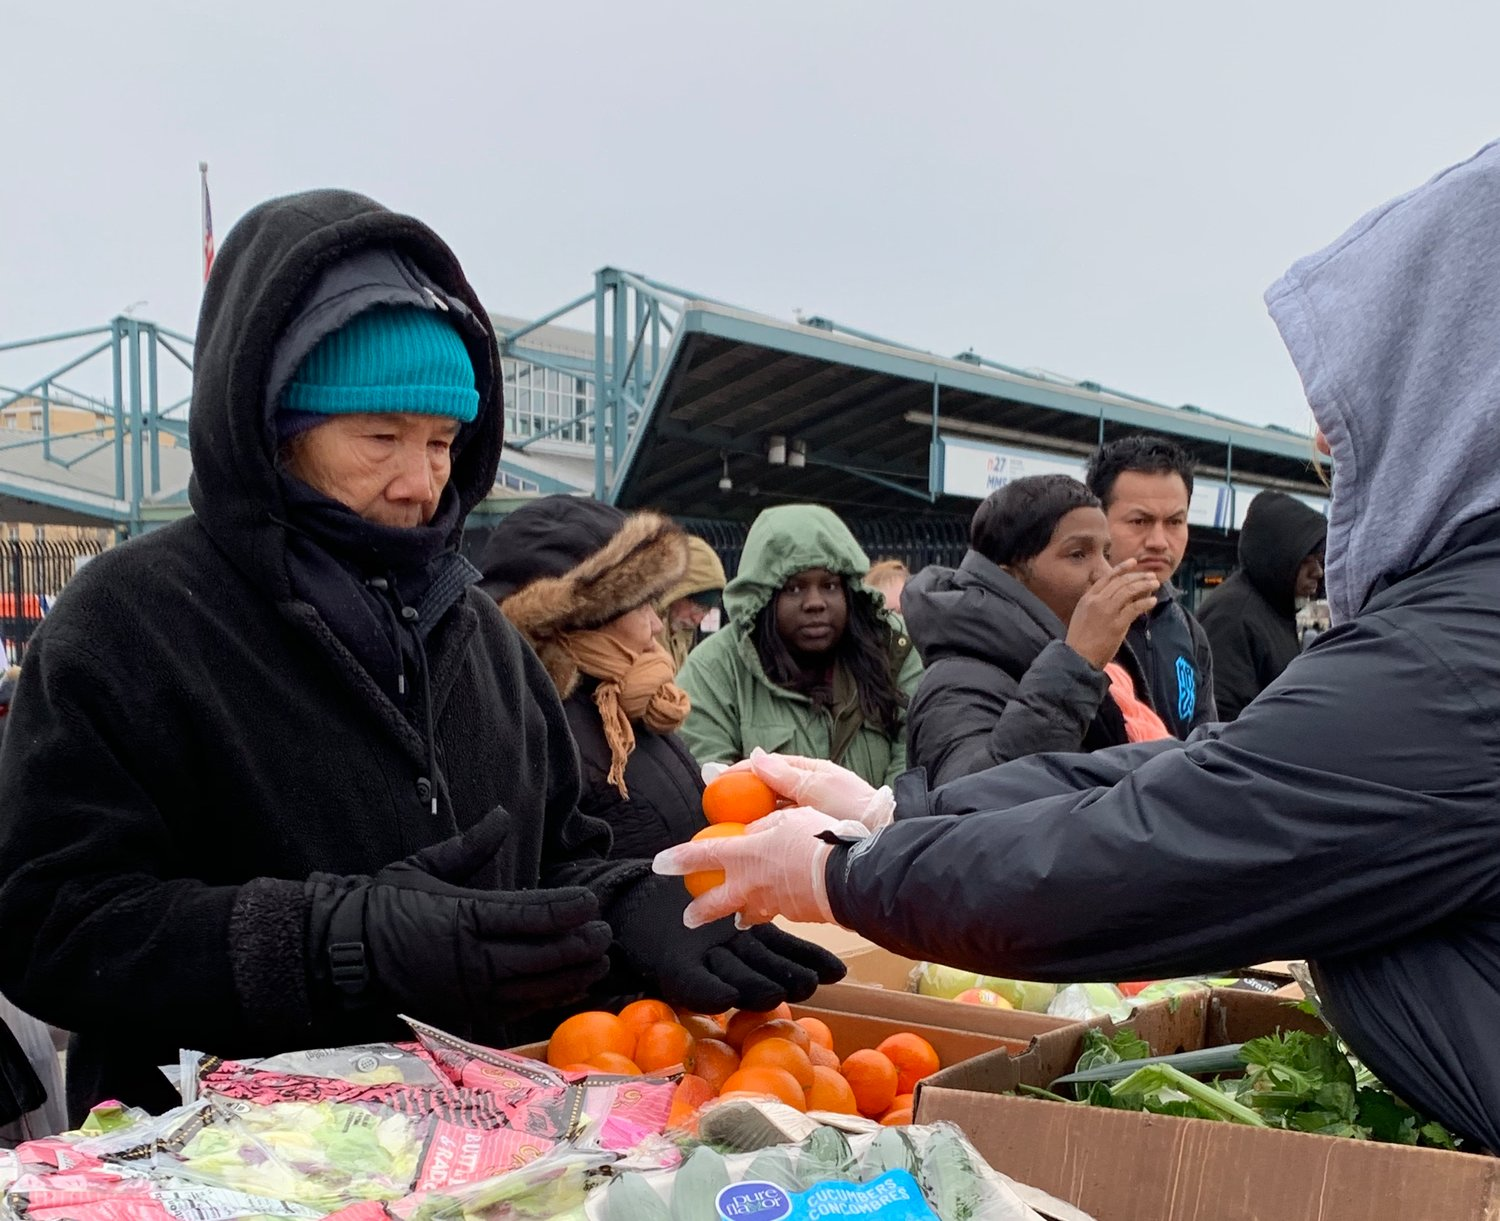 A volunteer handed out food to a person in need recently at Community Solidarity's Food Share at the Long Island Rail Road station.